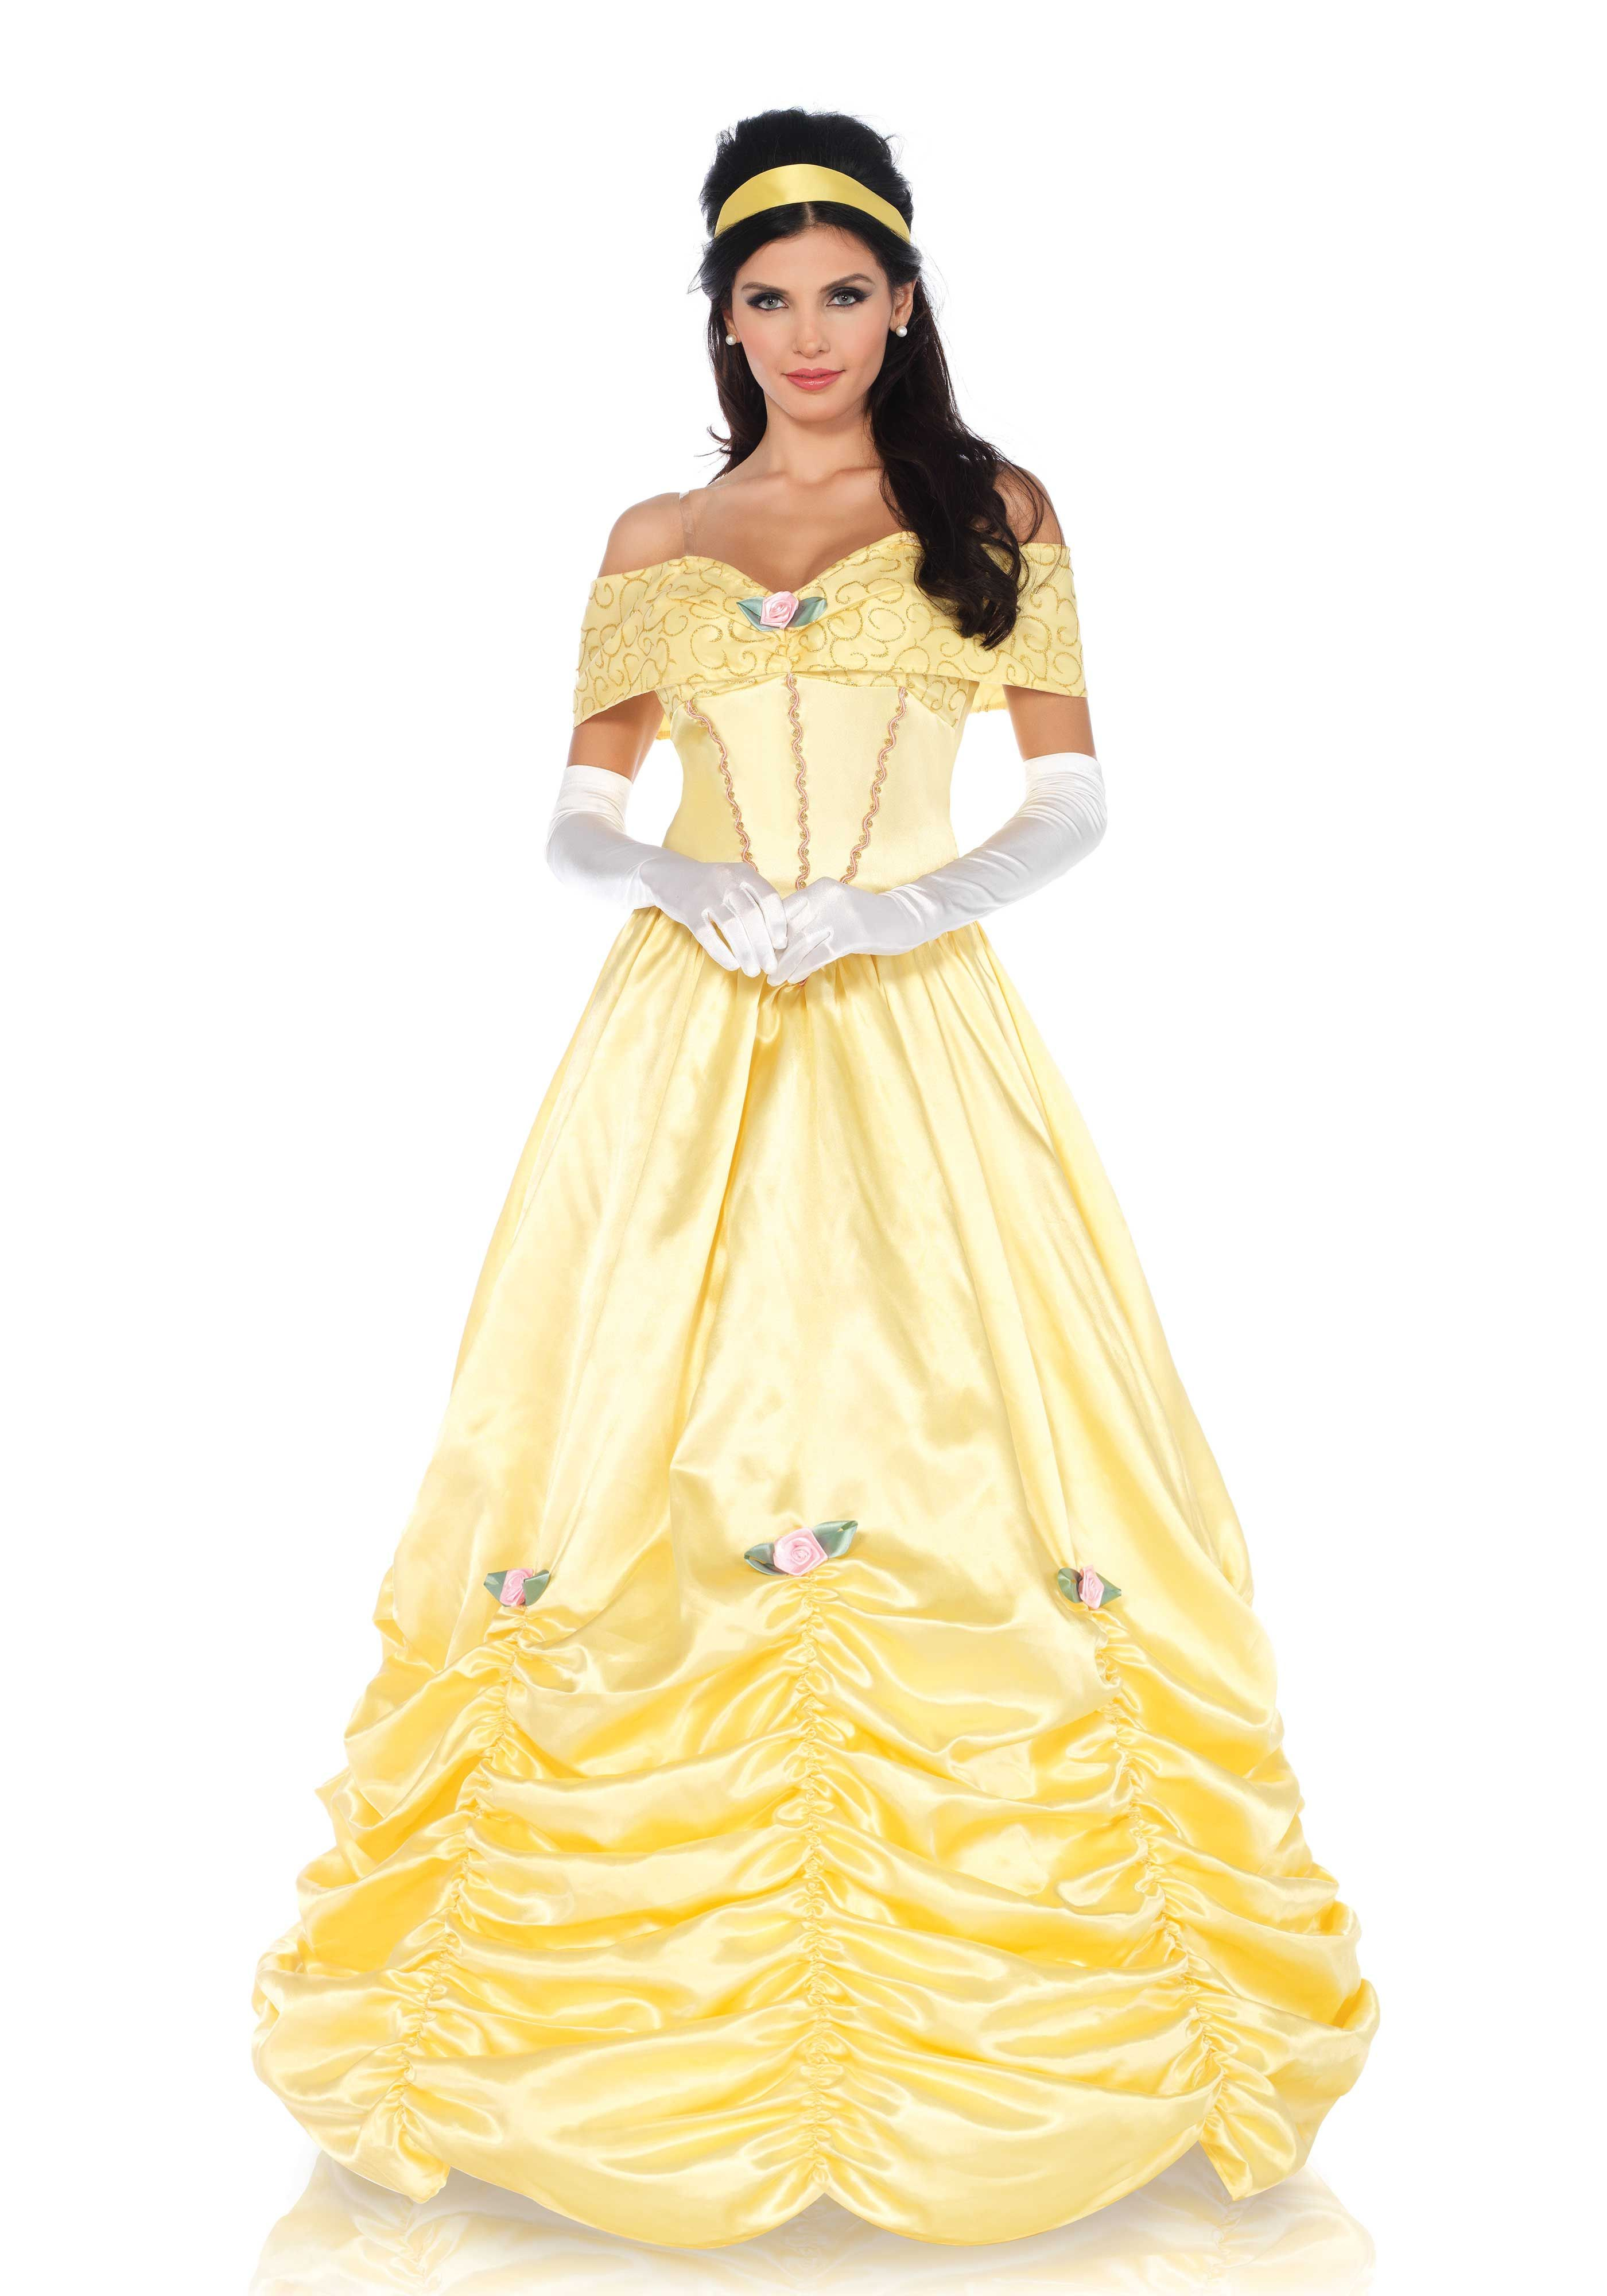 21eba8ad9be2a6 Leg Avenue Classic Beauty Costume #Disney #Belle #Beast #Yellow #Dress  #BallGown #Halloween #Princess #DressUp #Outfit